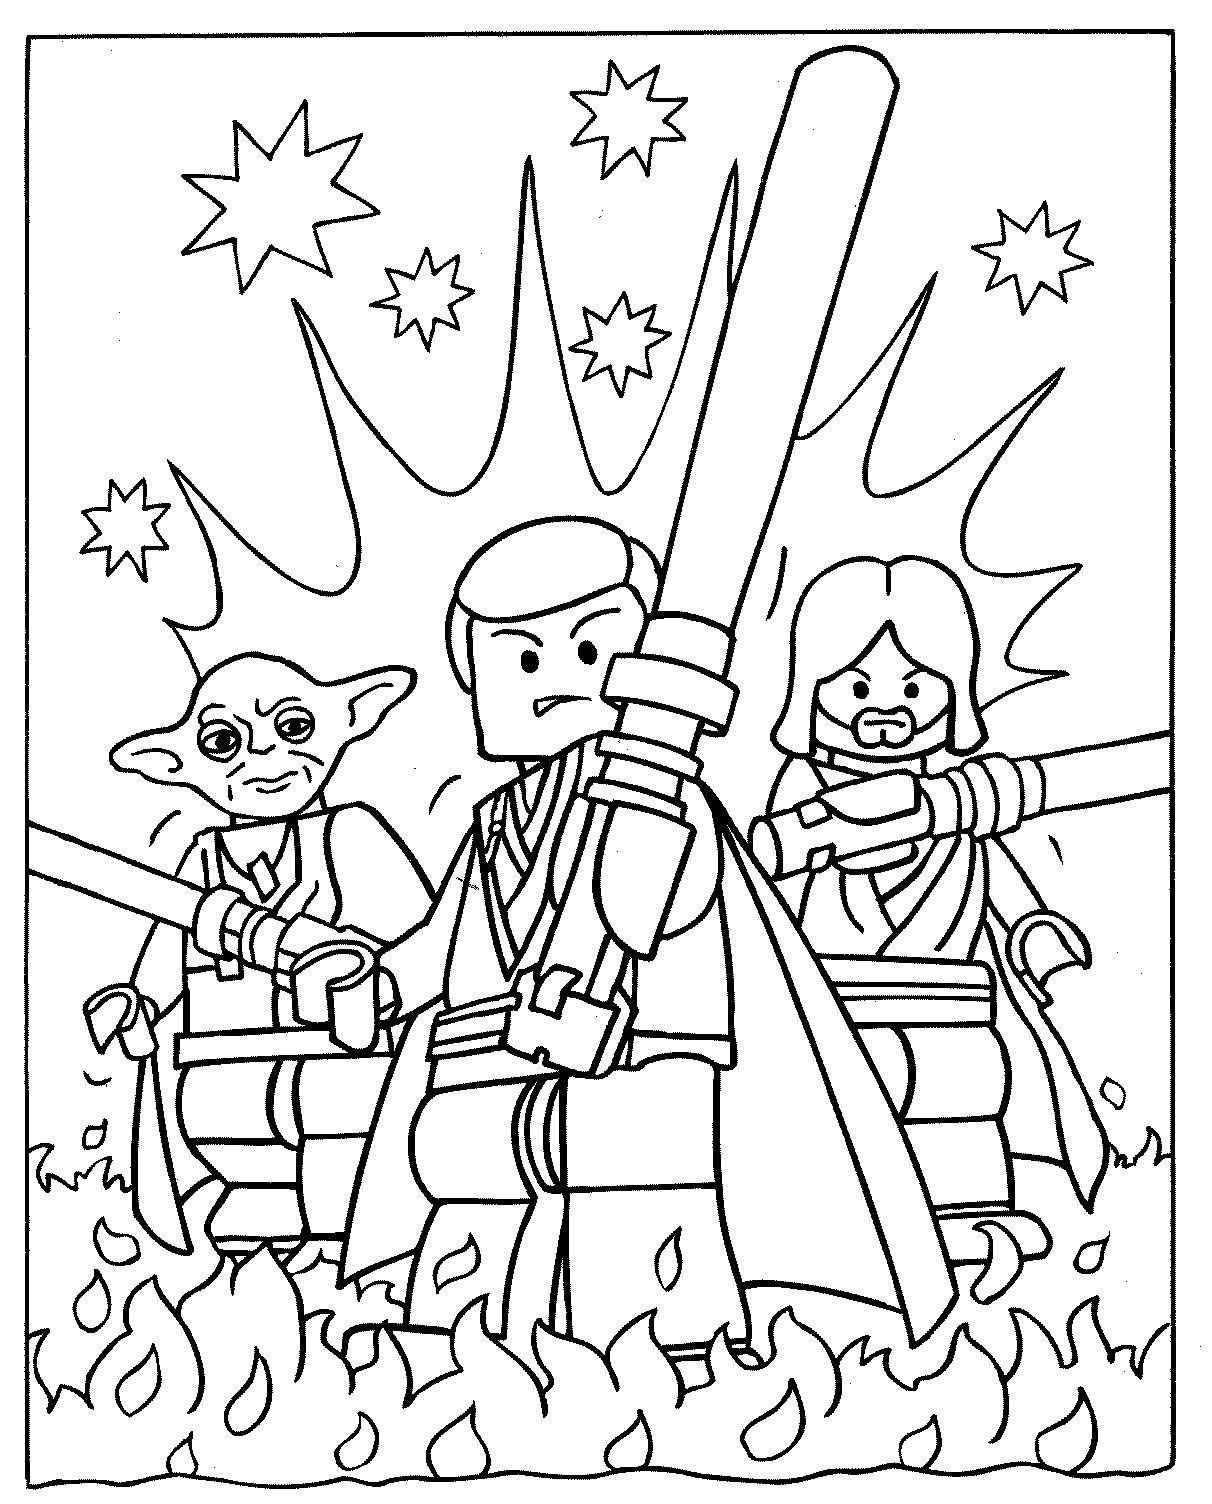 Colouring sheets to colour - Lego Coloring Pages To Print Coloring Pages Pictures Imagixs